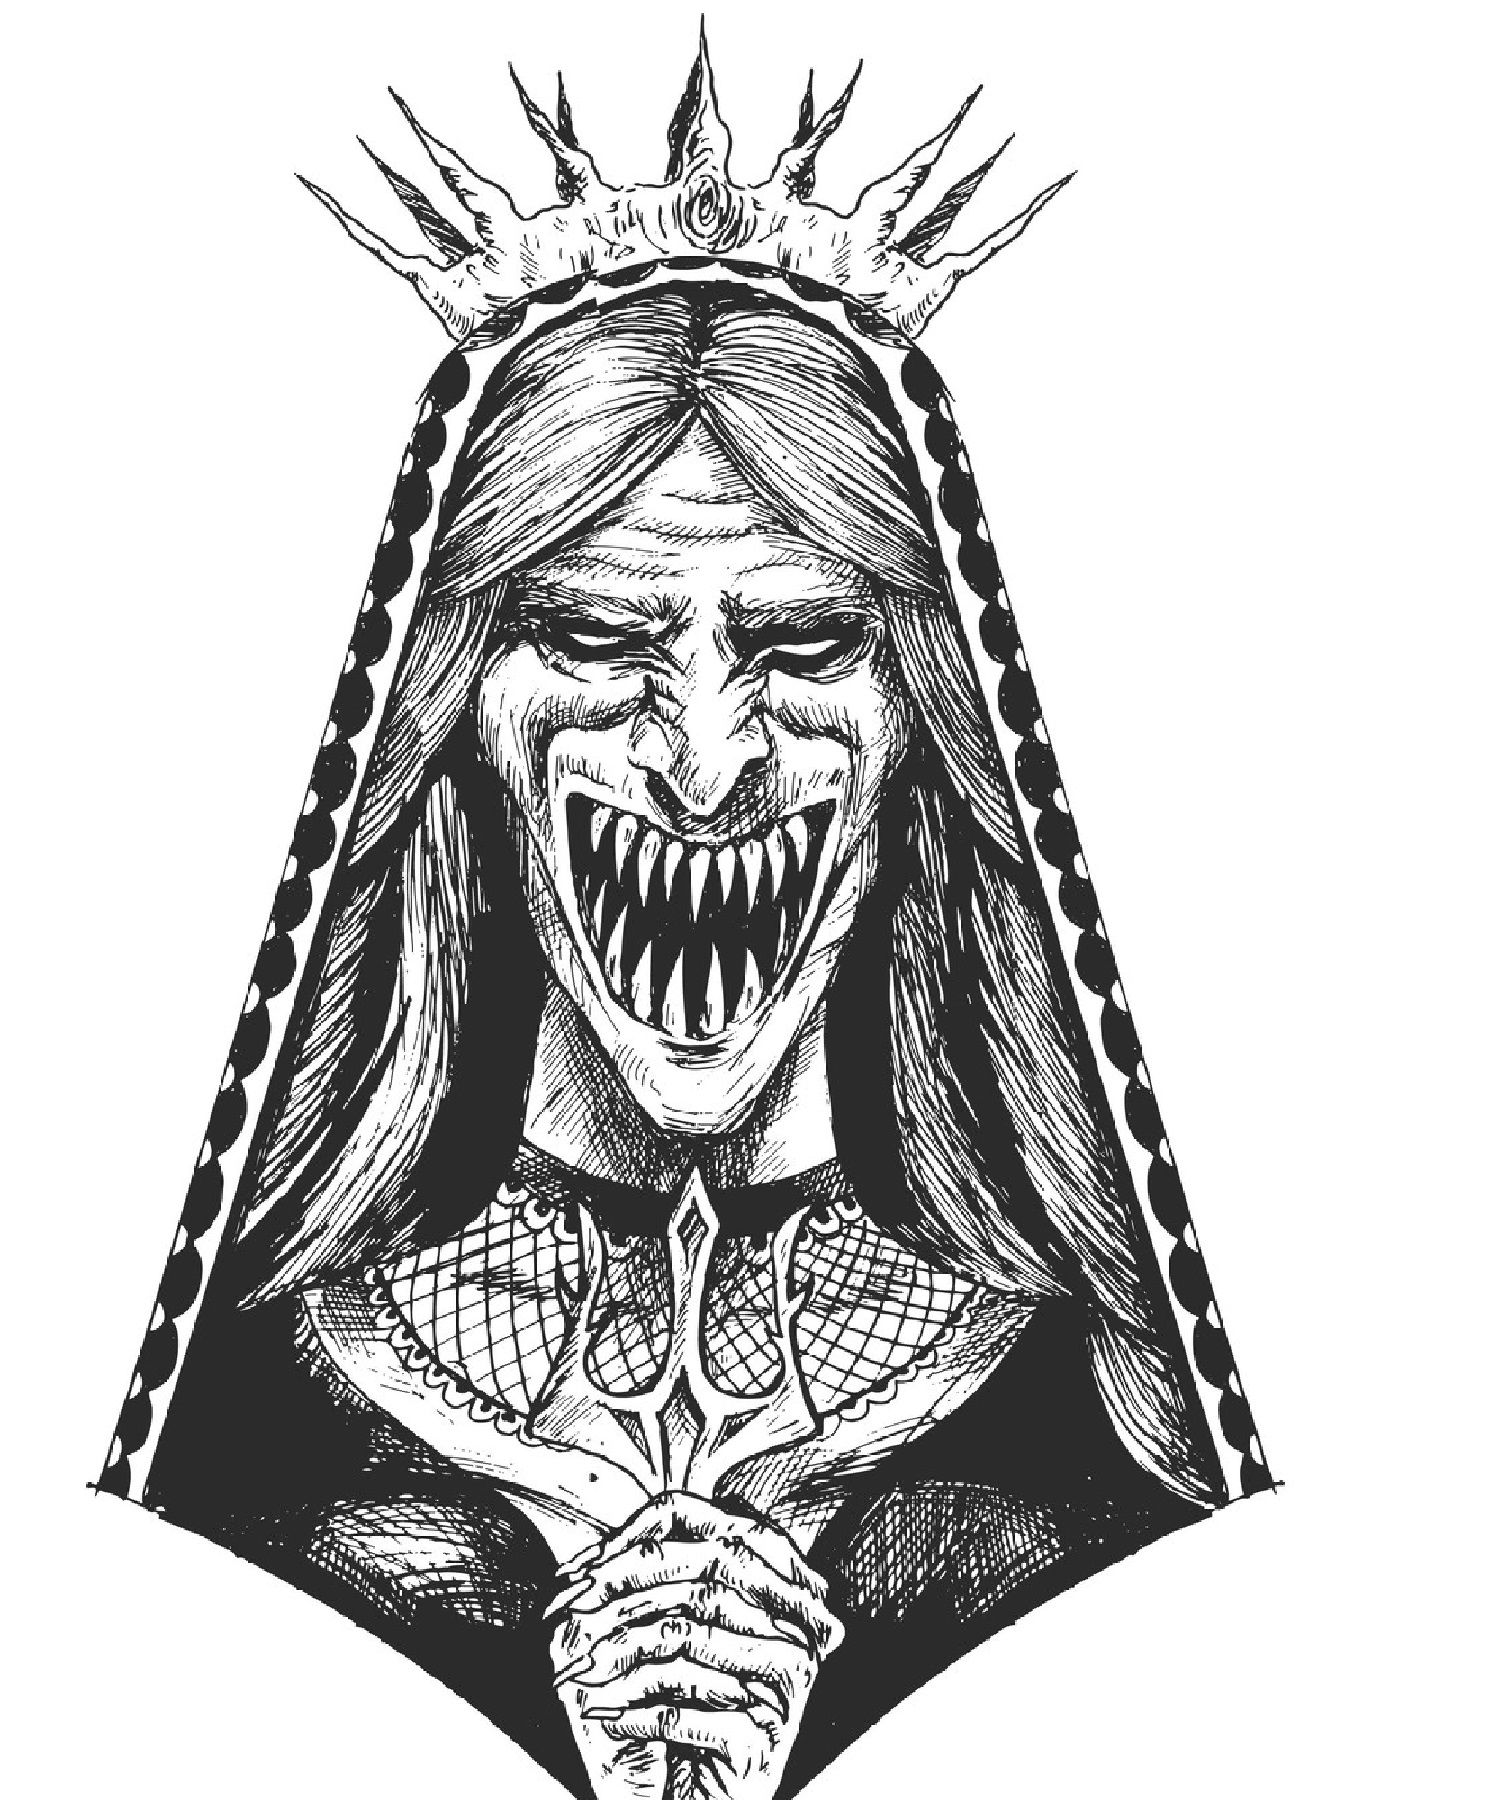 scary demon skull coloring pages scary skull coloring pages coloring coloring pages scary skull demon pages coloring